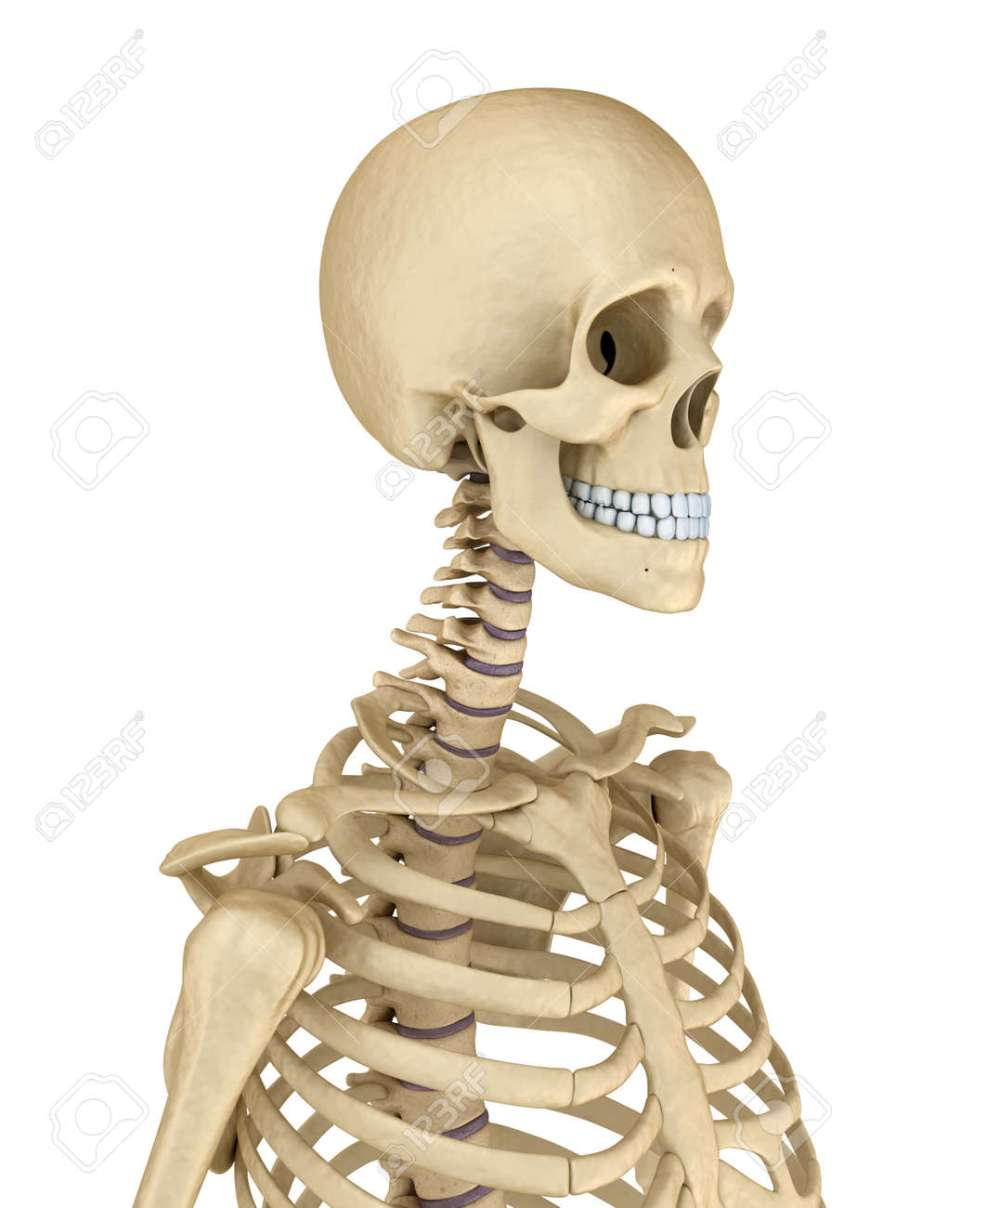 medium resolution of torso of human skeleton isolated medically accurate 3d illustration stock illustration 63479083